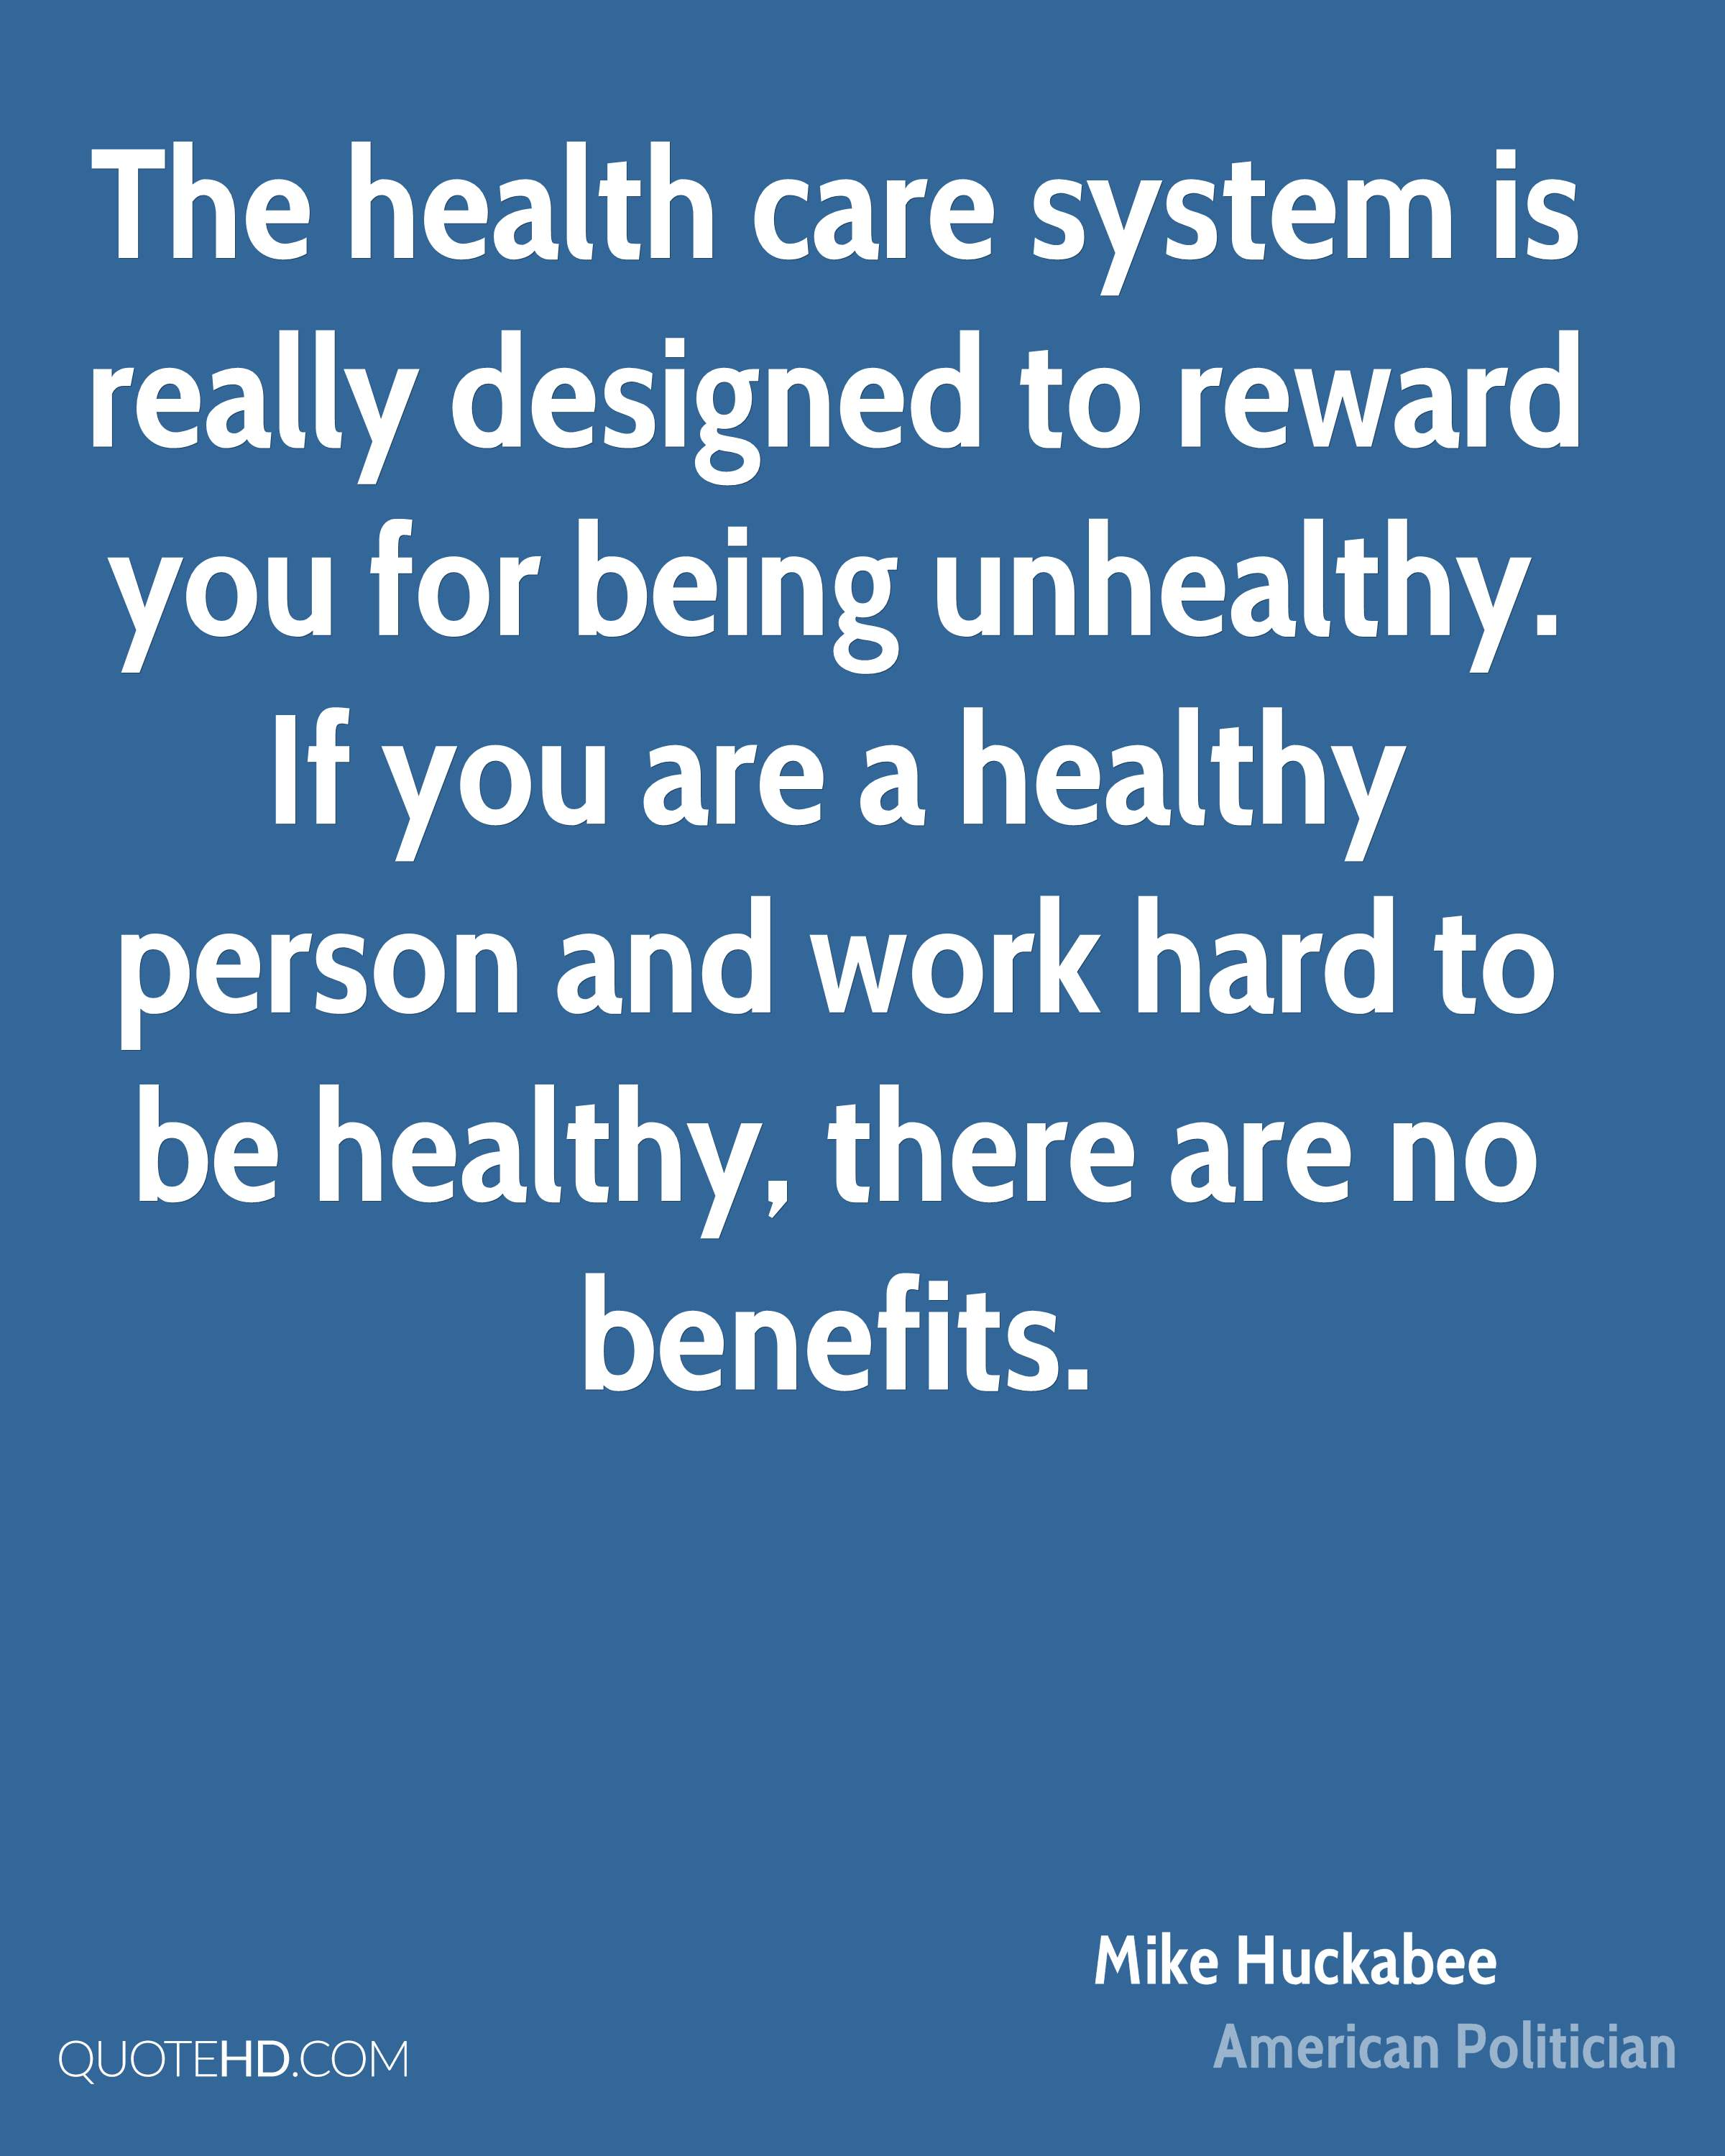 The health care system is really designed to reward you for being unhealthy. If you are a healthy person and work hard to be healthy, there are no benefits.